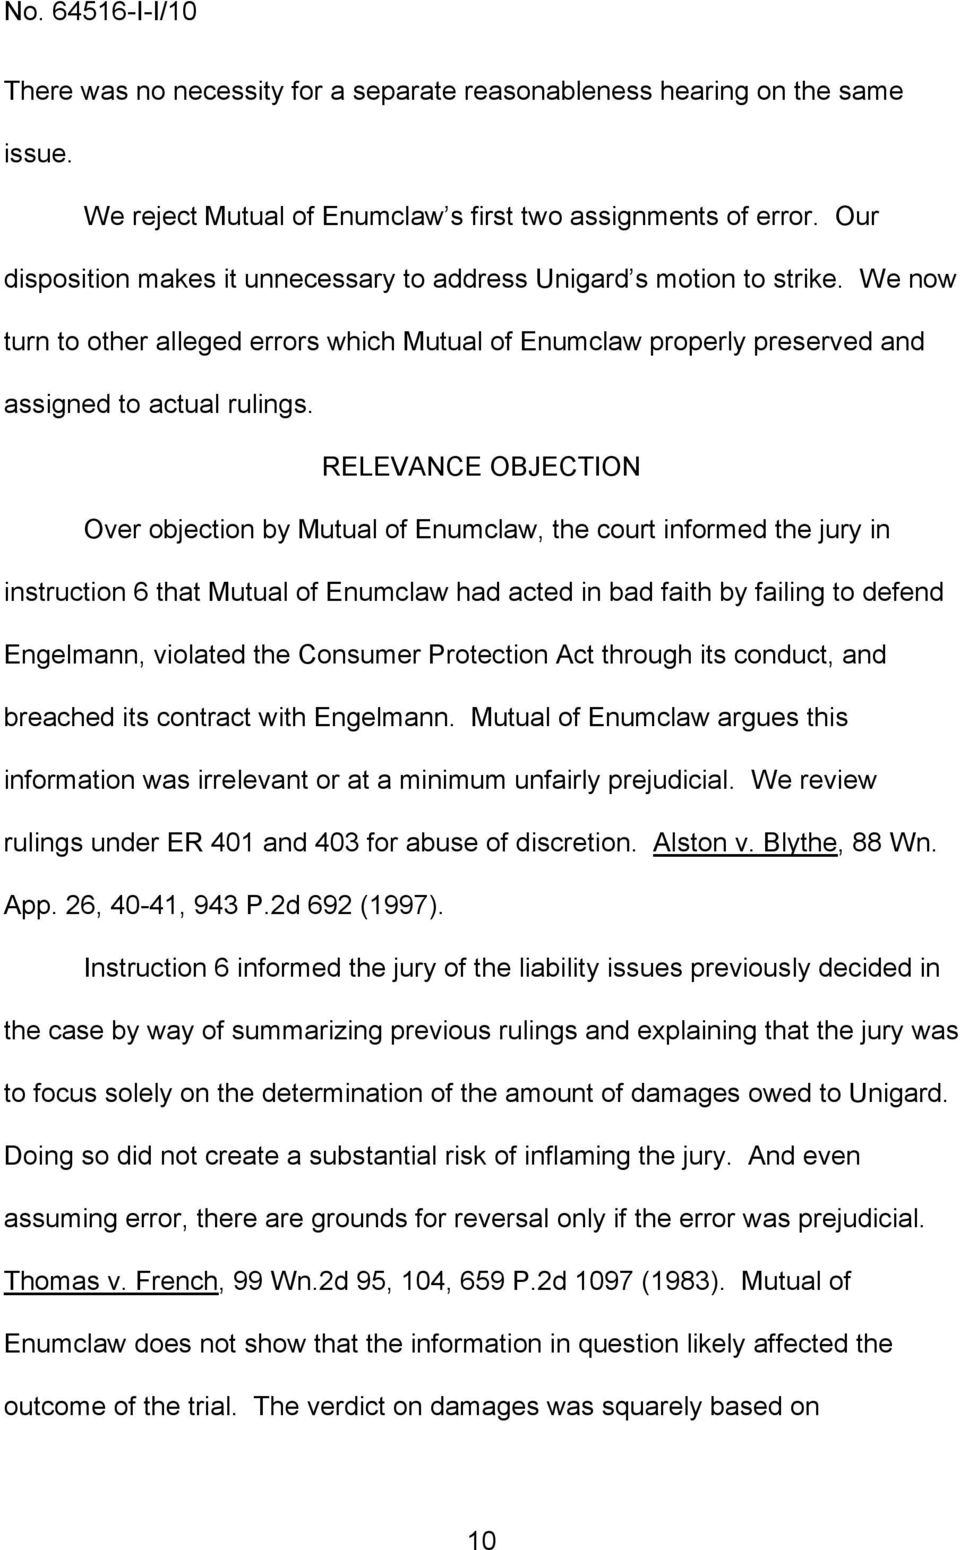 RELEVANCE OBJECTION Over objection by Mutual of Enumclaw, the court informed the jury in instruction 6 that Mutual of Enumclaw had acted in bad faith by failing to defend Engelmann, violated the